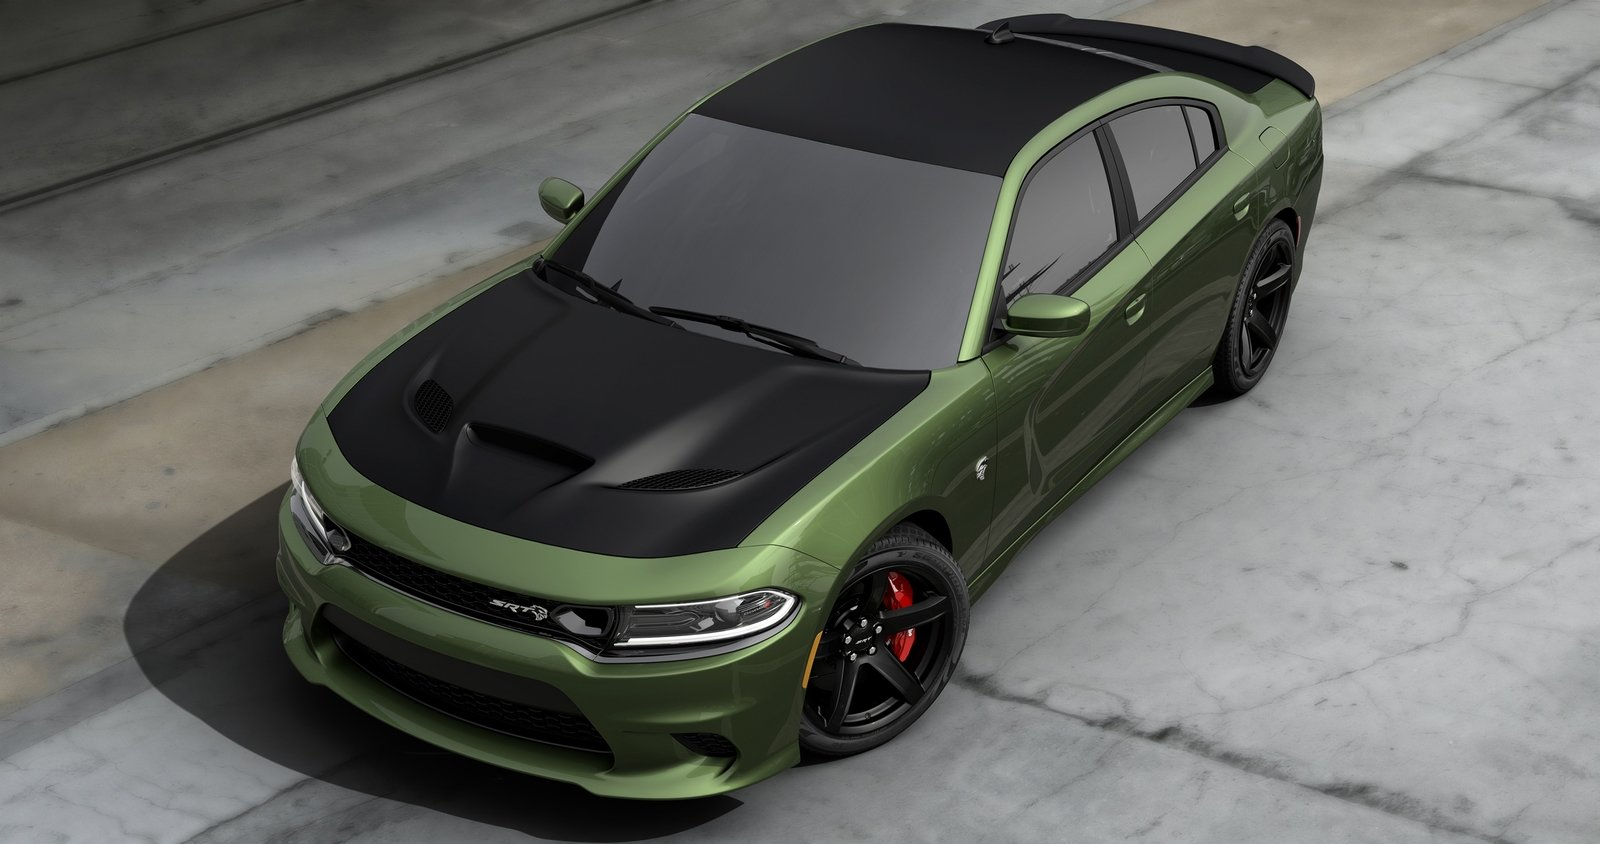 Awd Dodge Charger >> 2020 Dodge Charger Stars & Stripes Edition Pictures ...